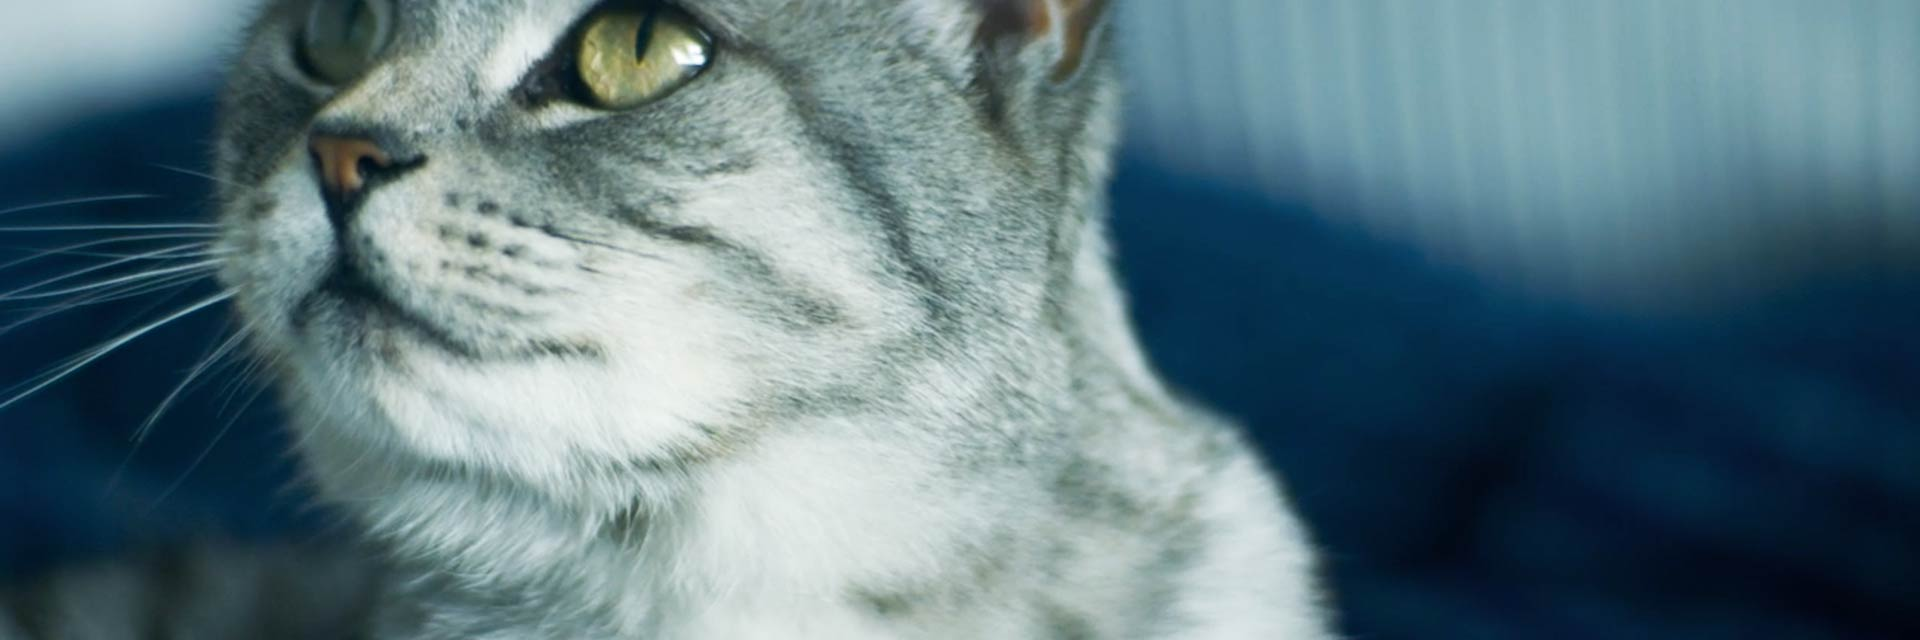 whiskas-video-banner